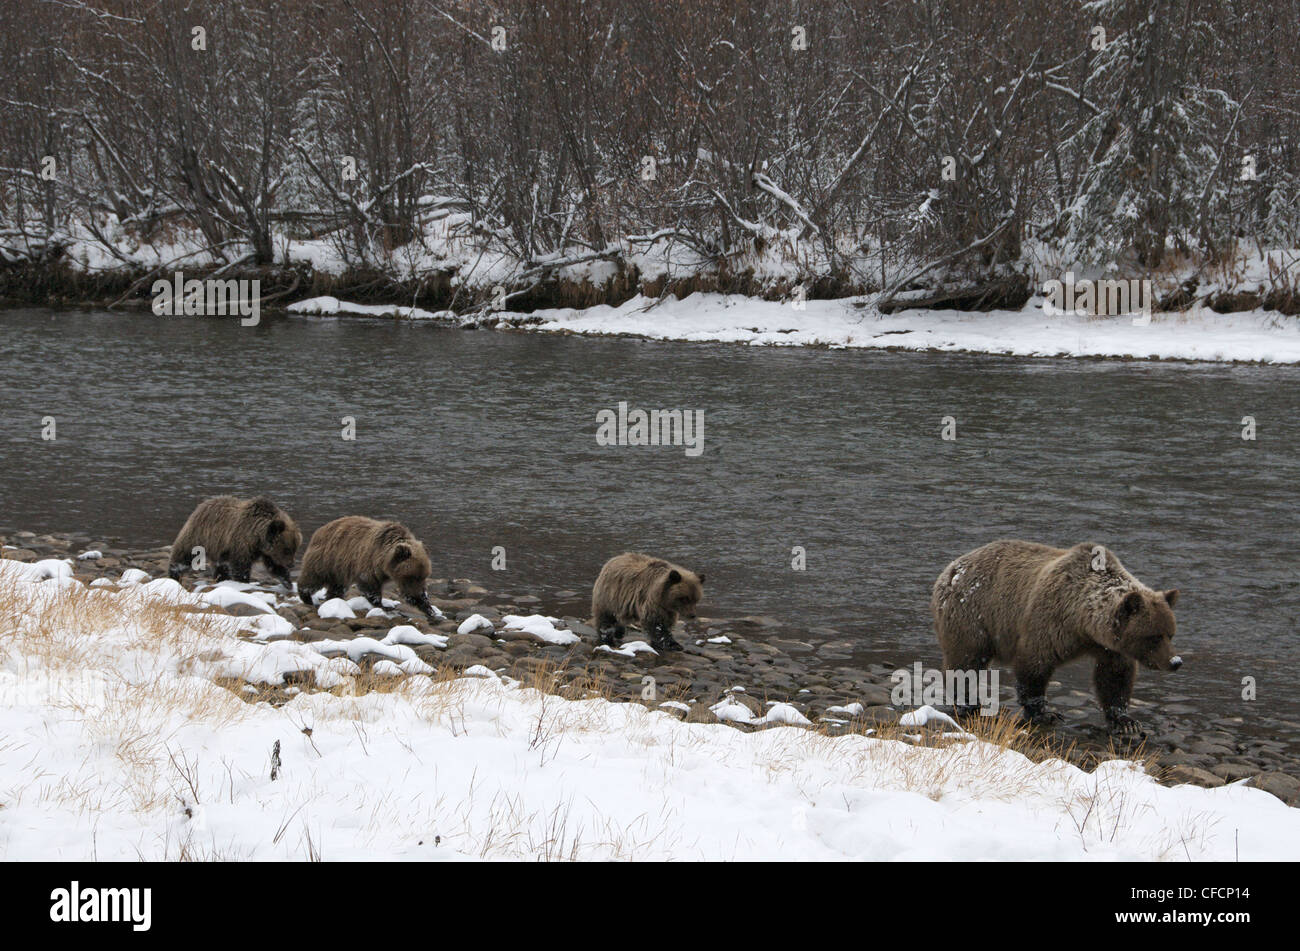 Grizzly Bear Sow 1st year cubs Ursus arctos - Stock Image